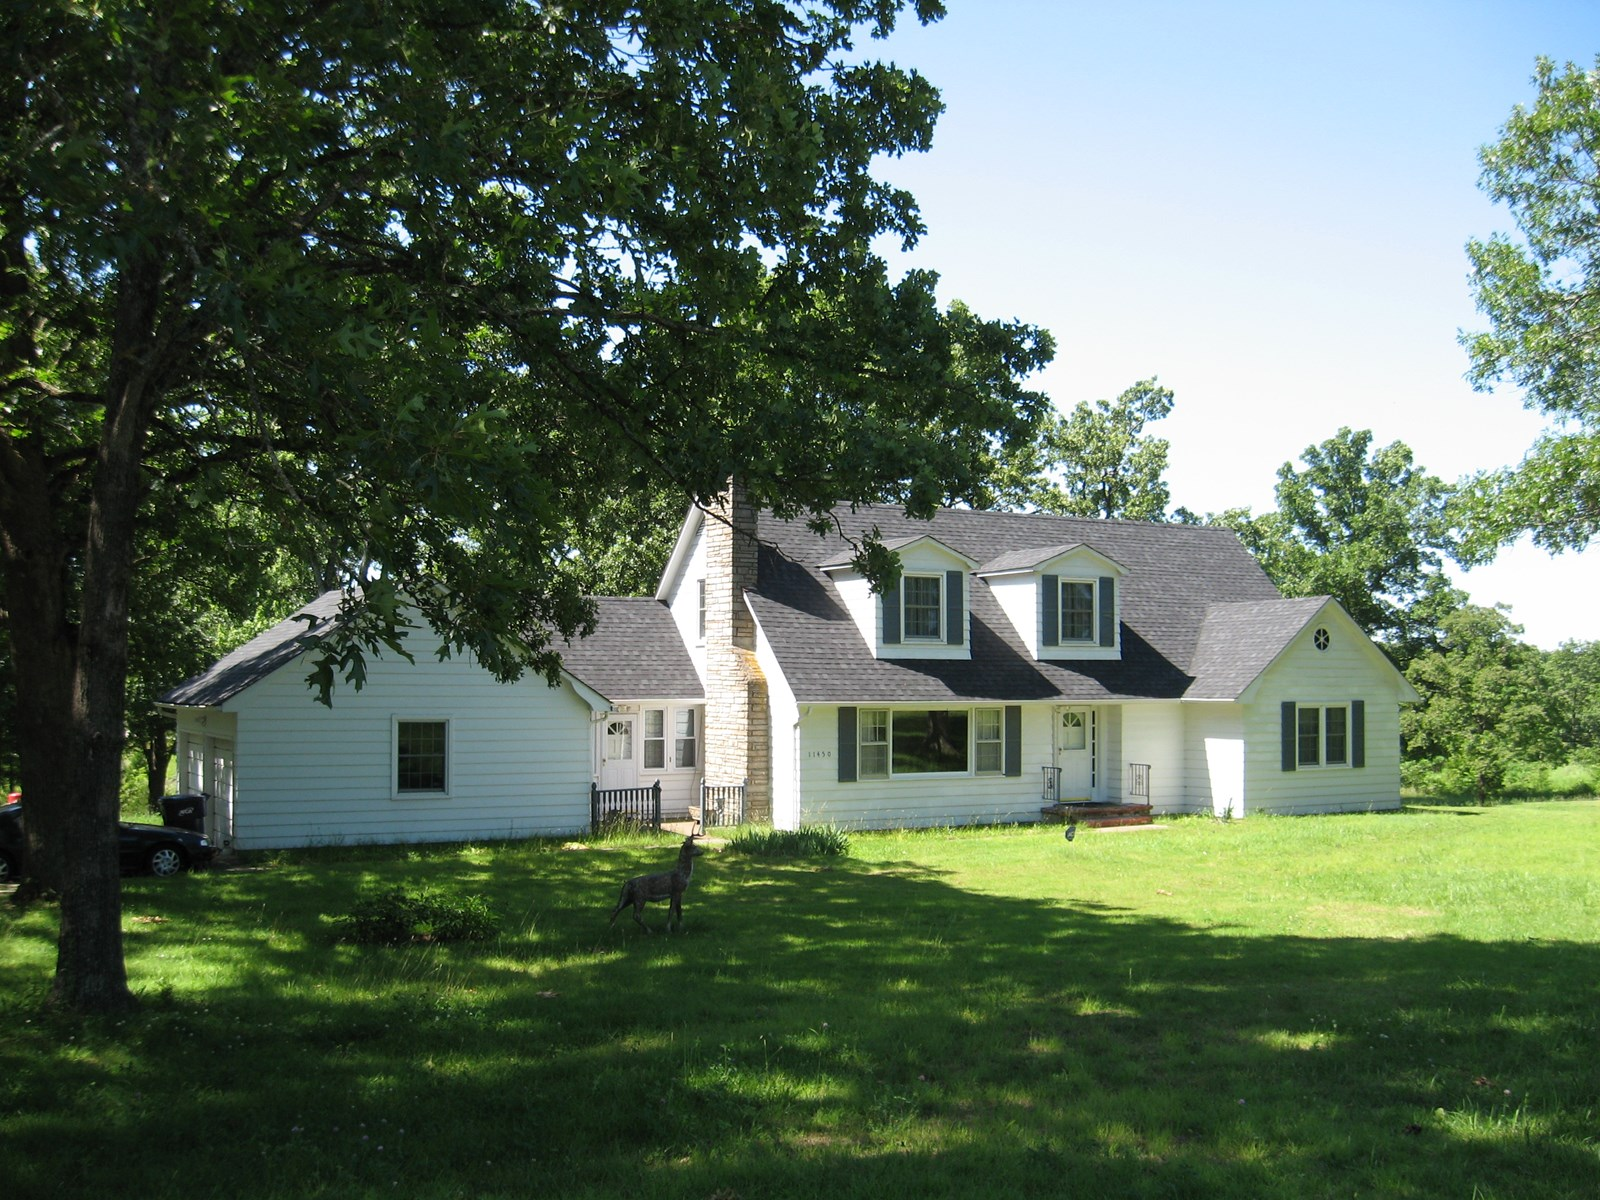 Country Home For Sale In Phelps County, Rolla, MO On 5.64 Ac